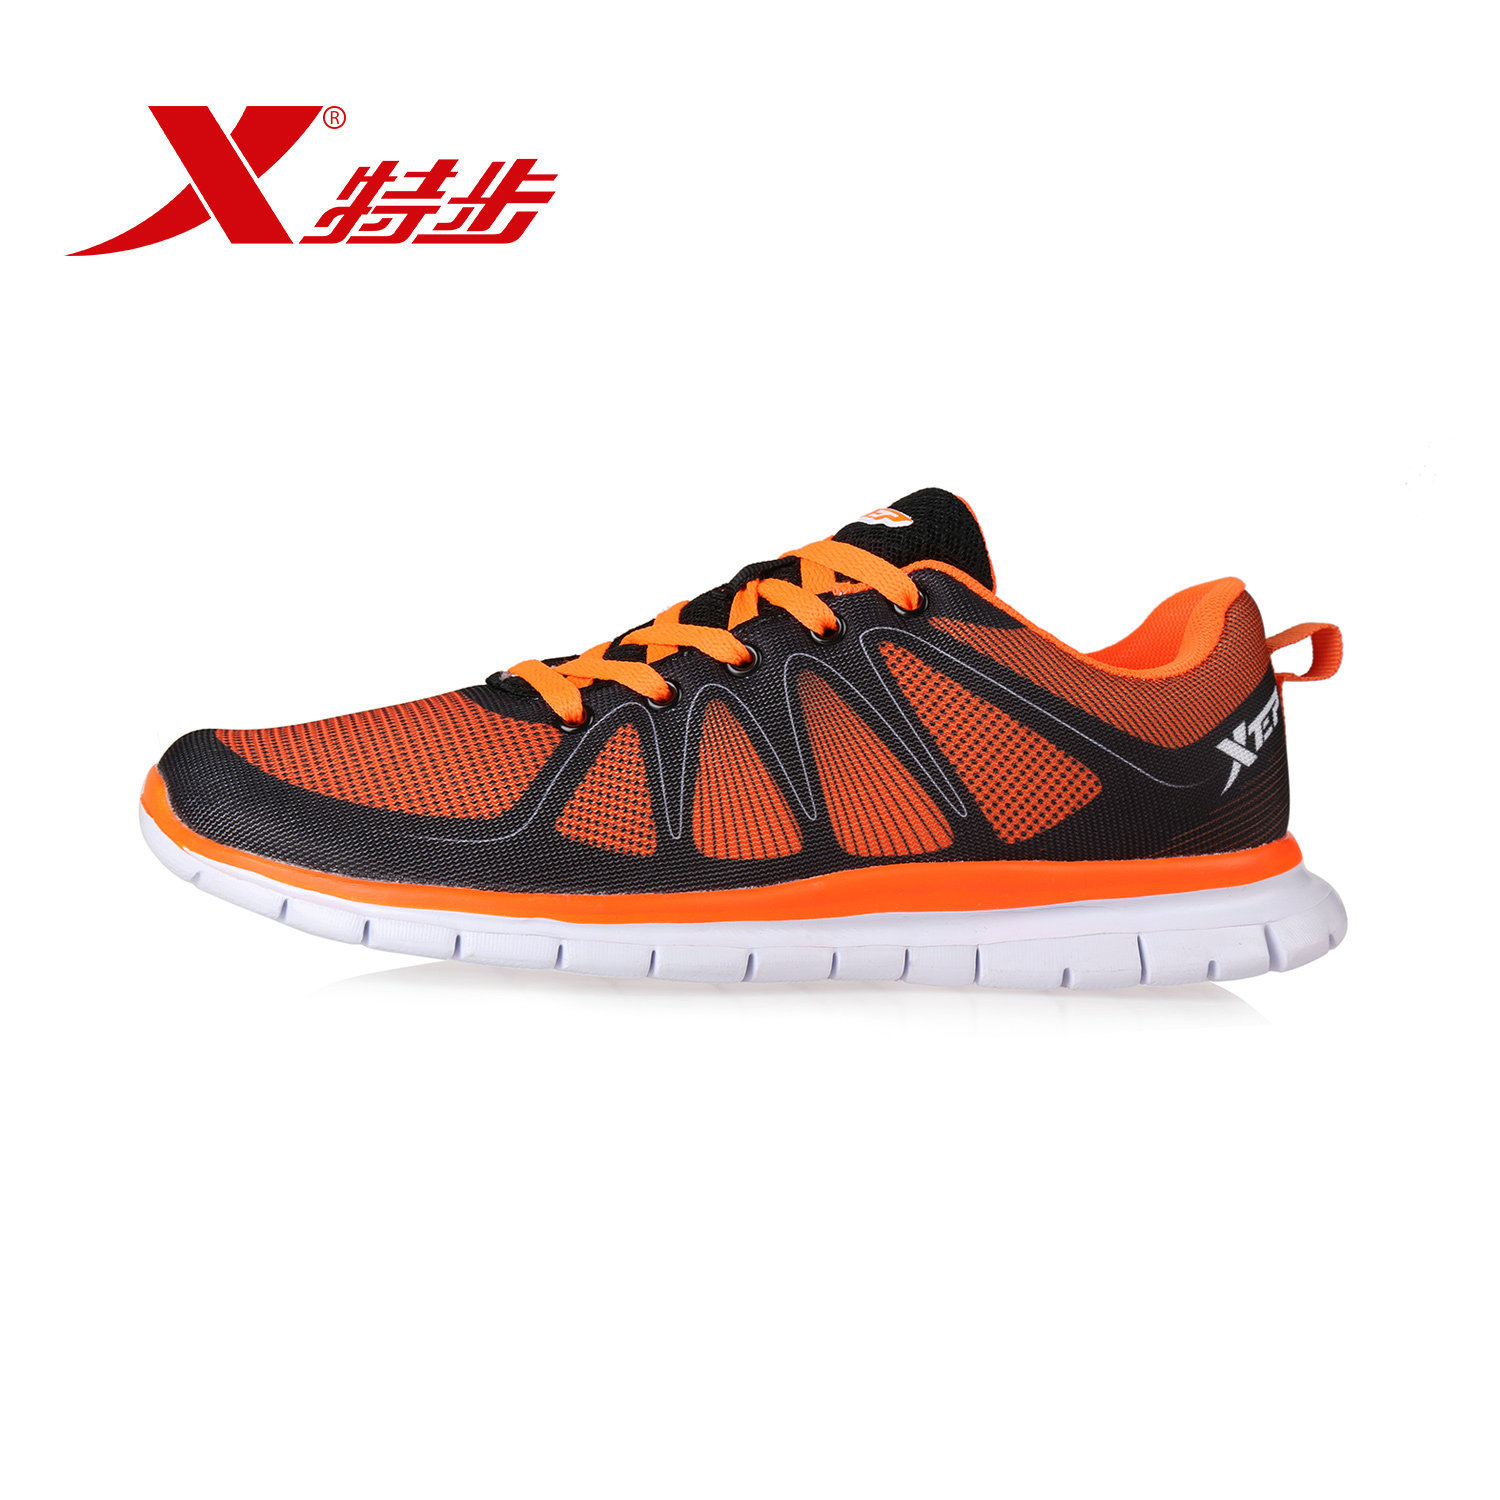 Xtep official authentic new fall fashion casual sports shoes lightweight breathable running shoes comfortable and lightweight slip